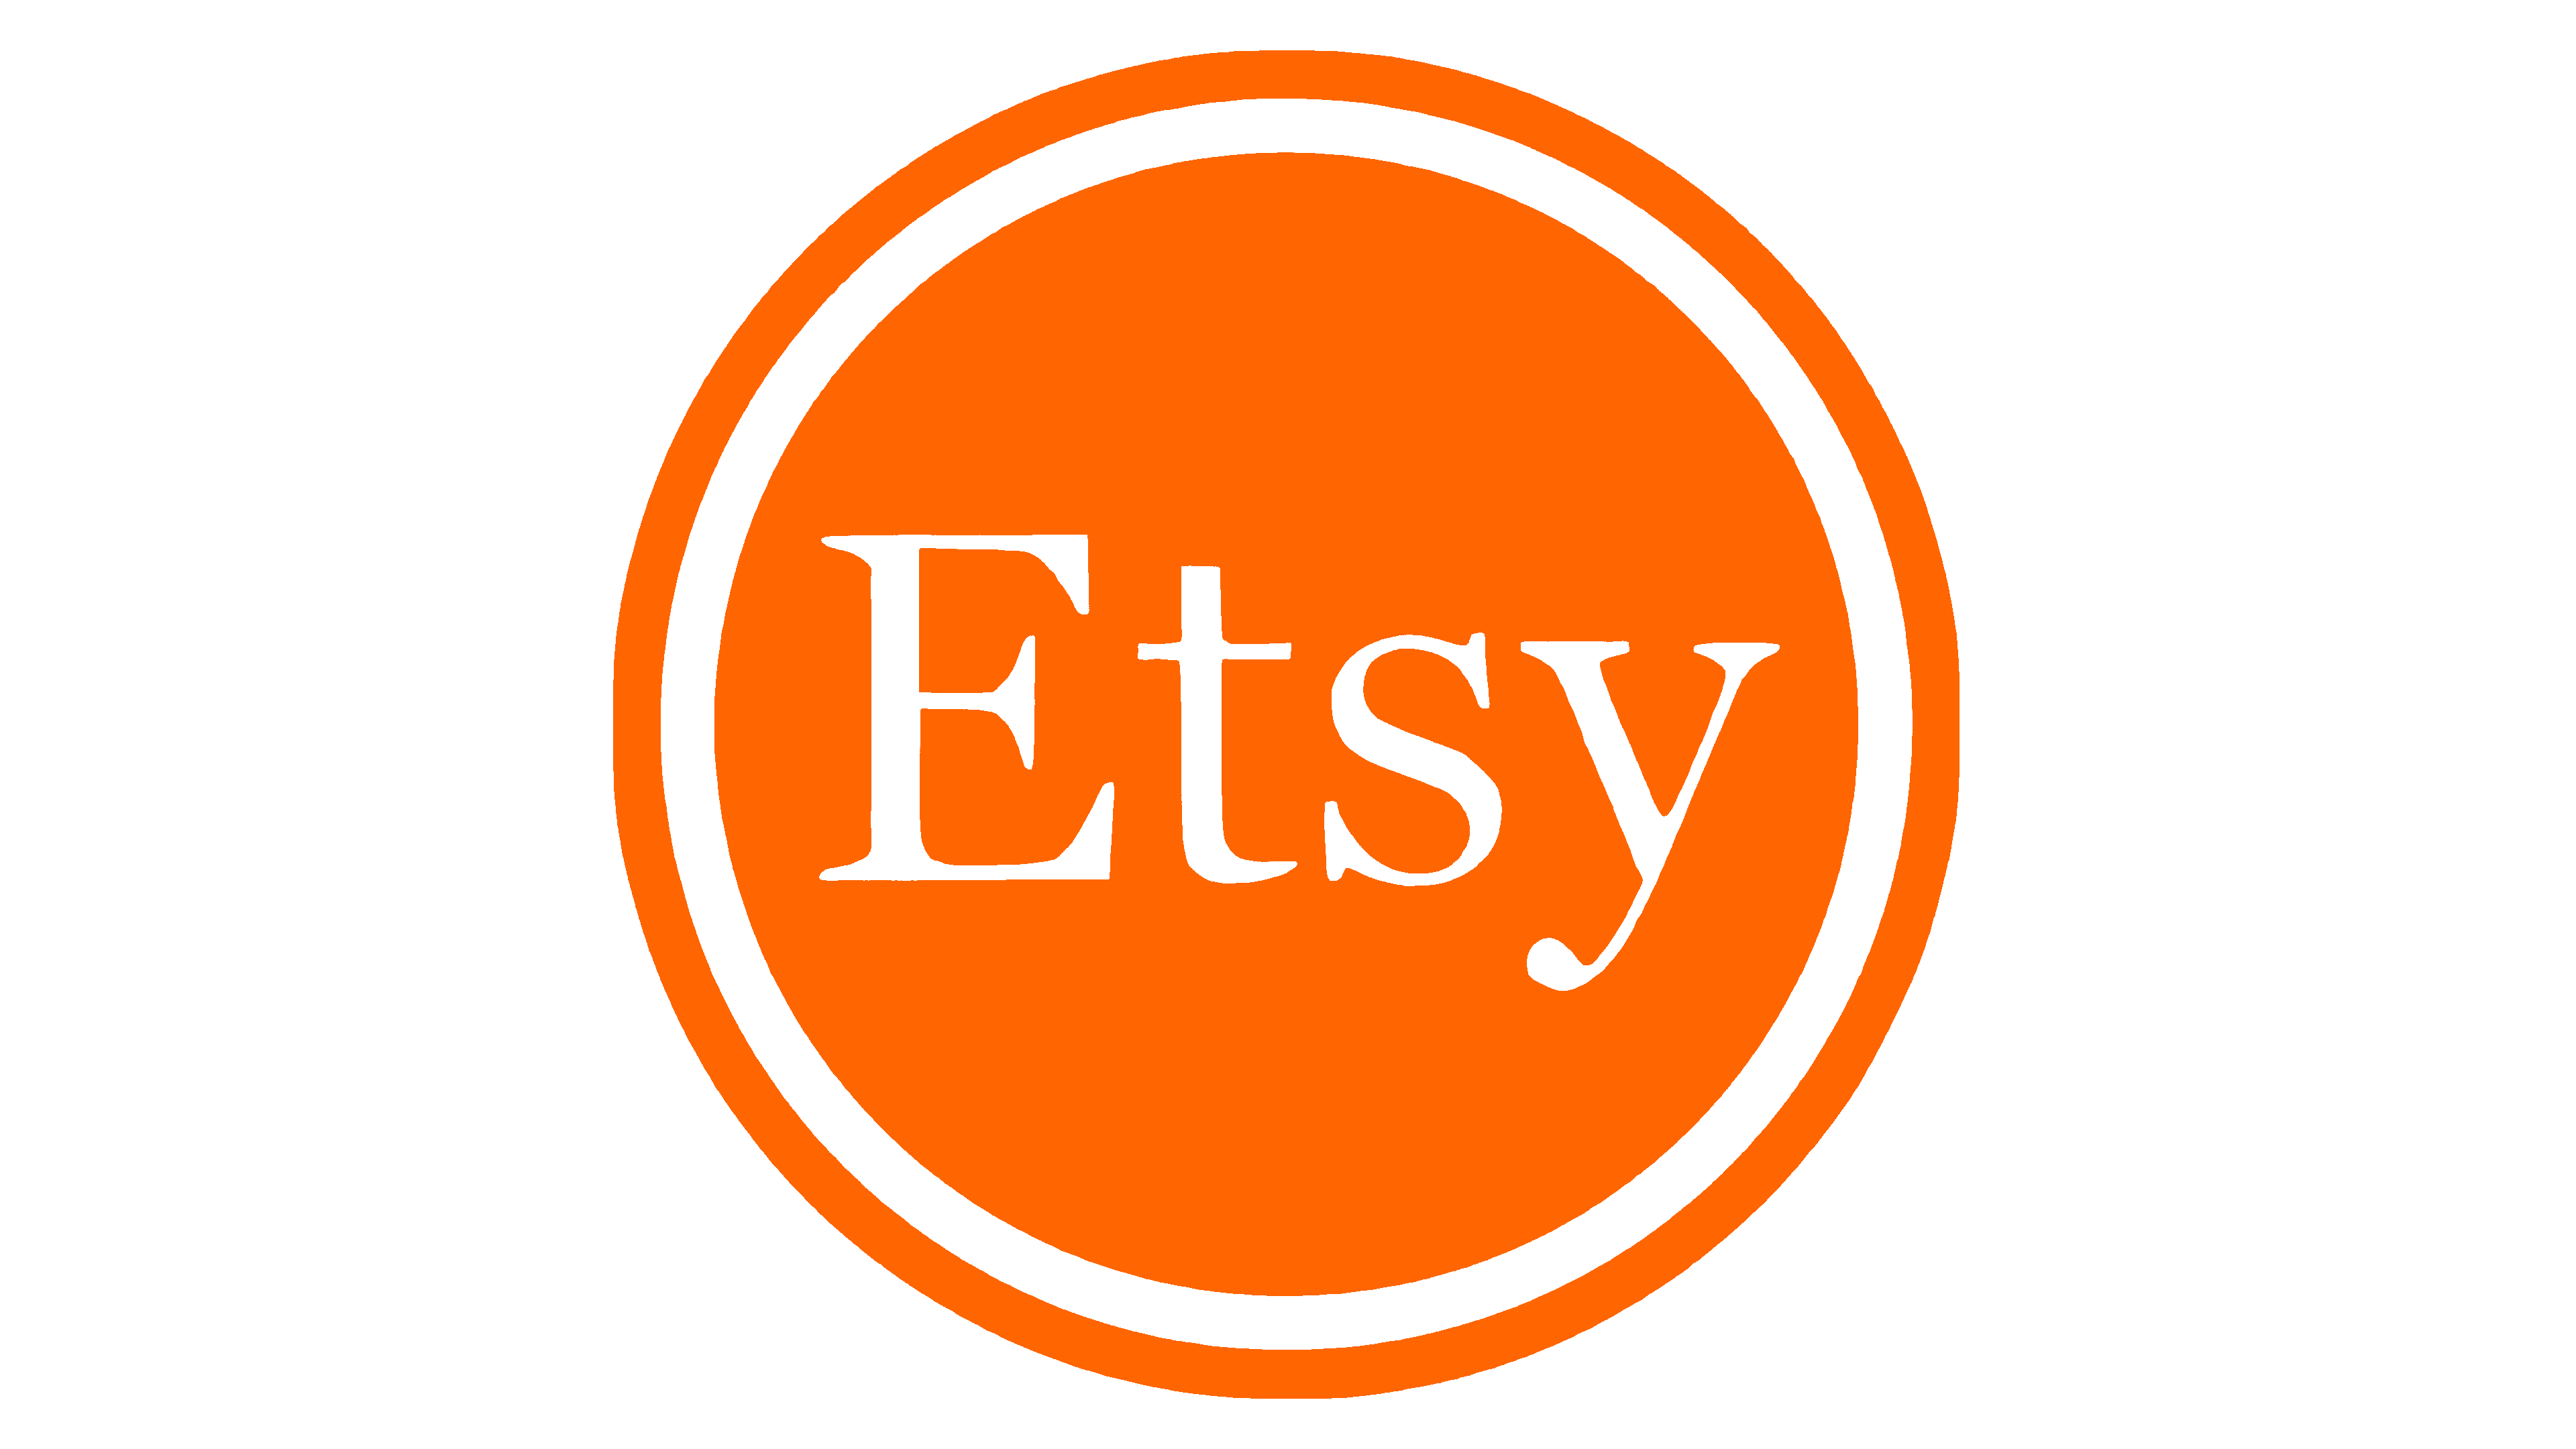 Action Etsy